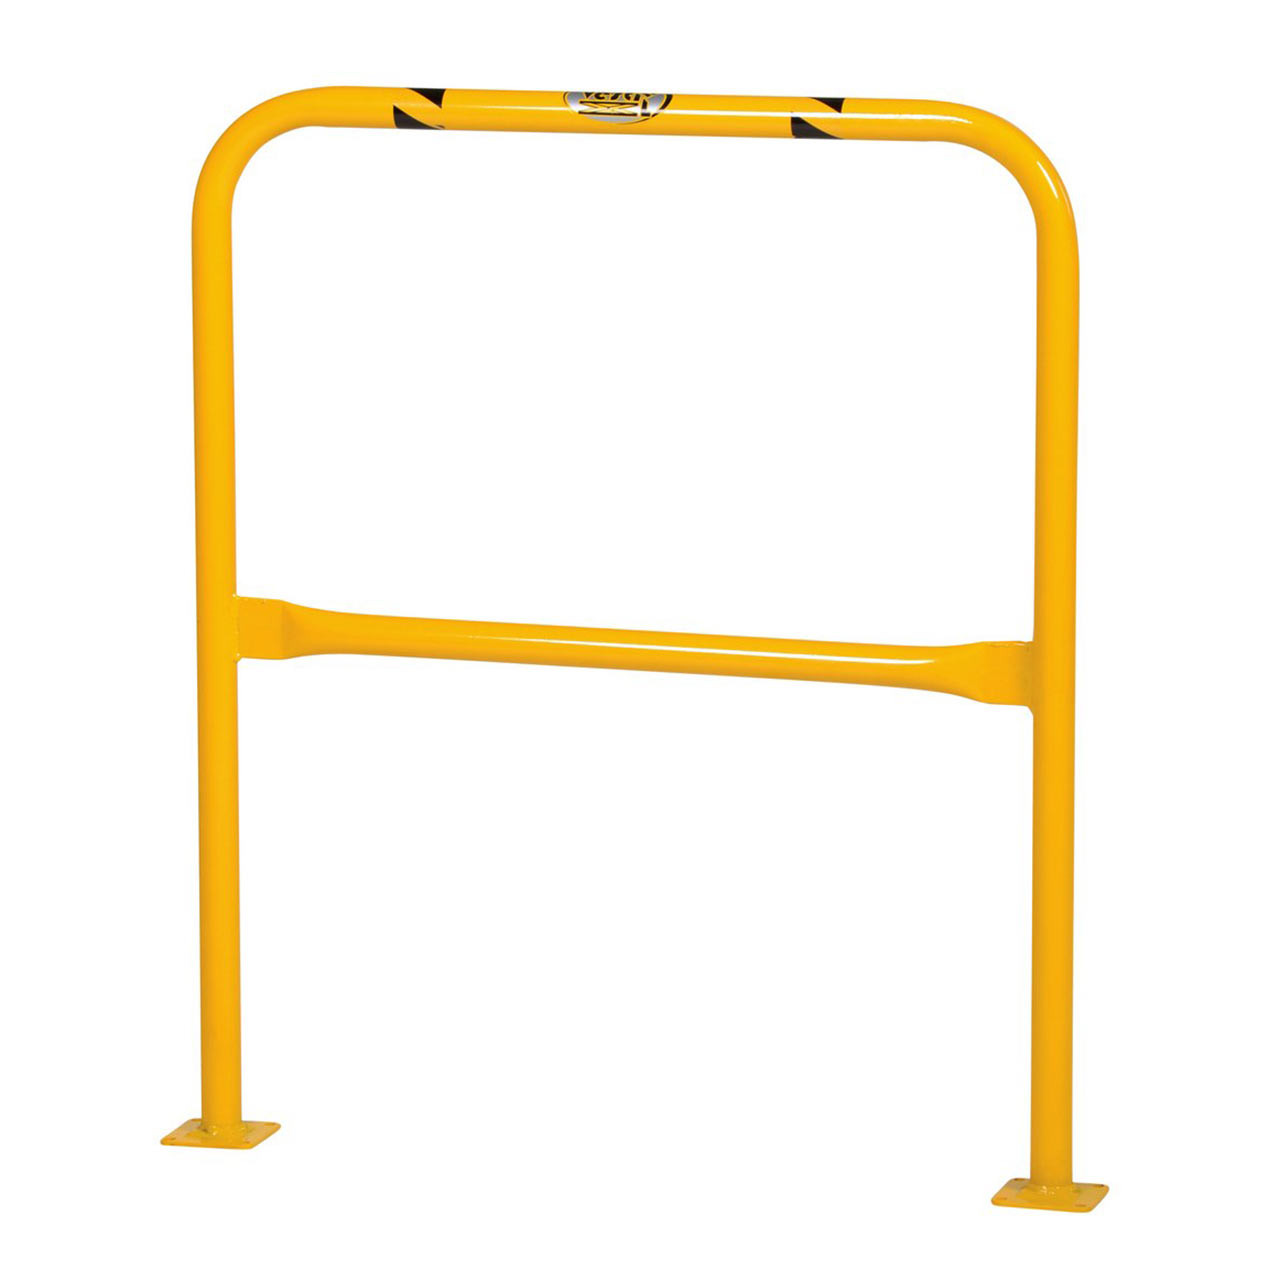 "42"" machinery guards have an additional rail for support"